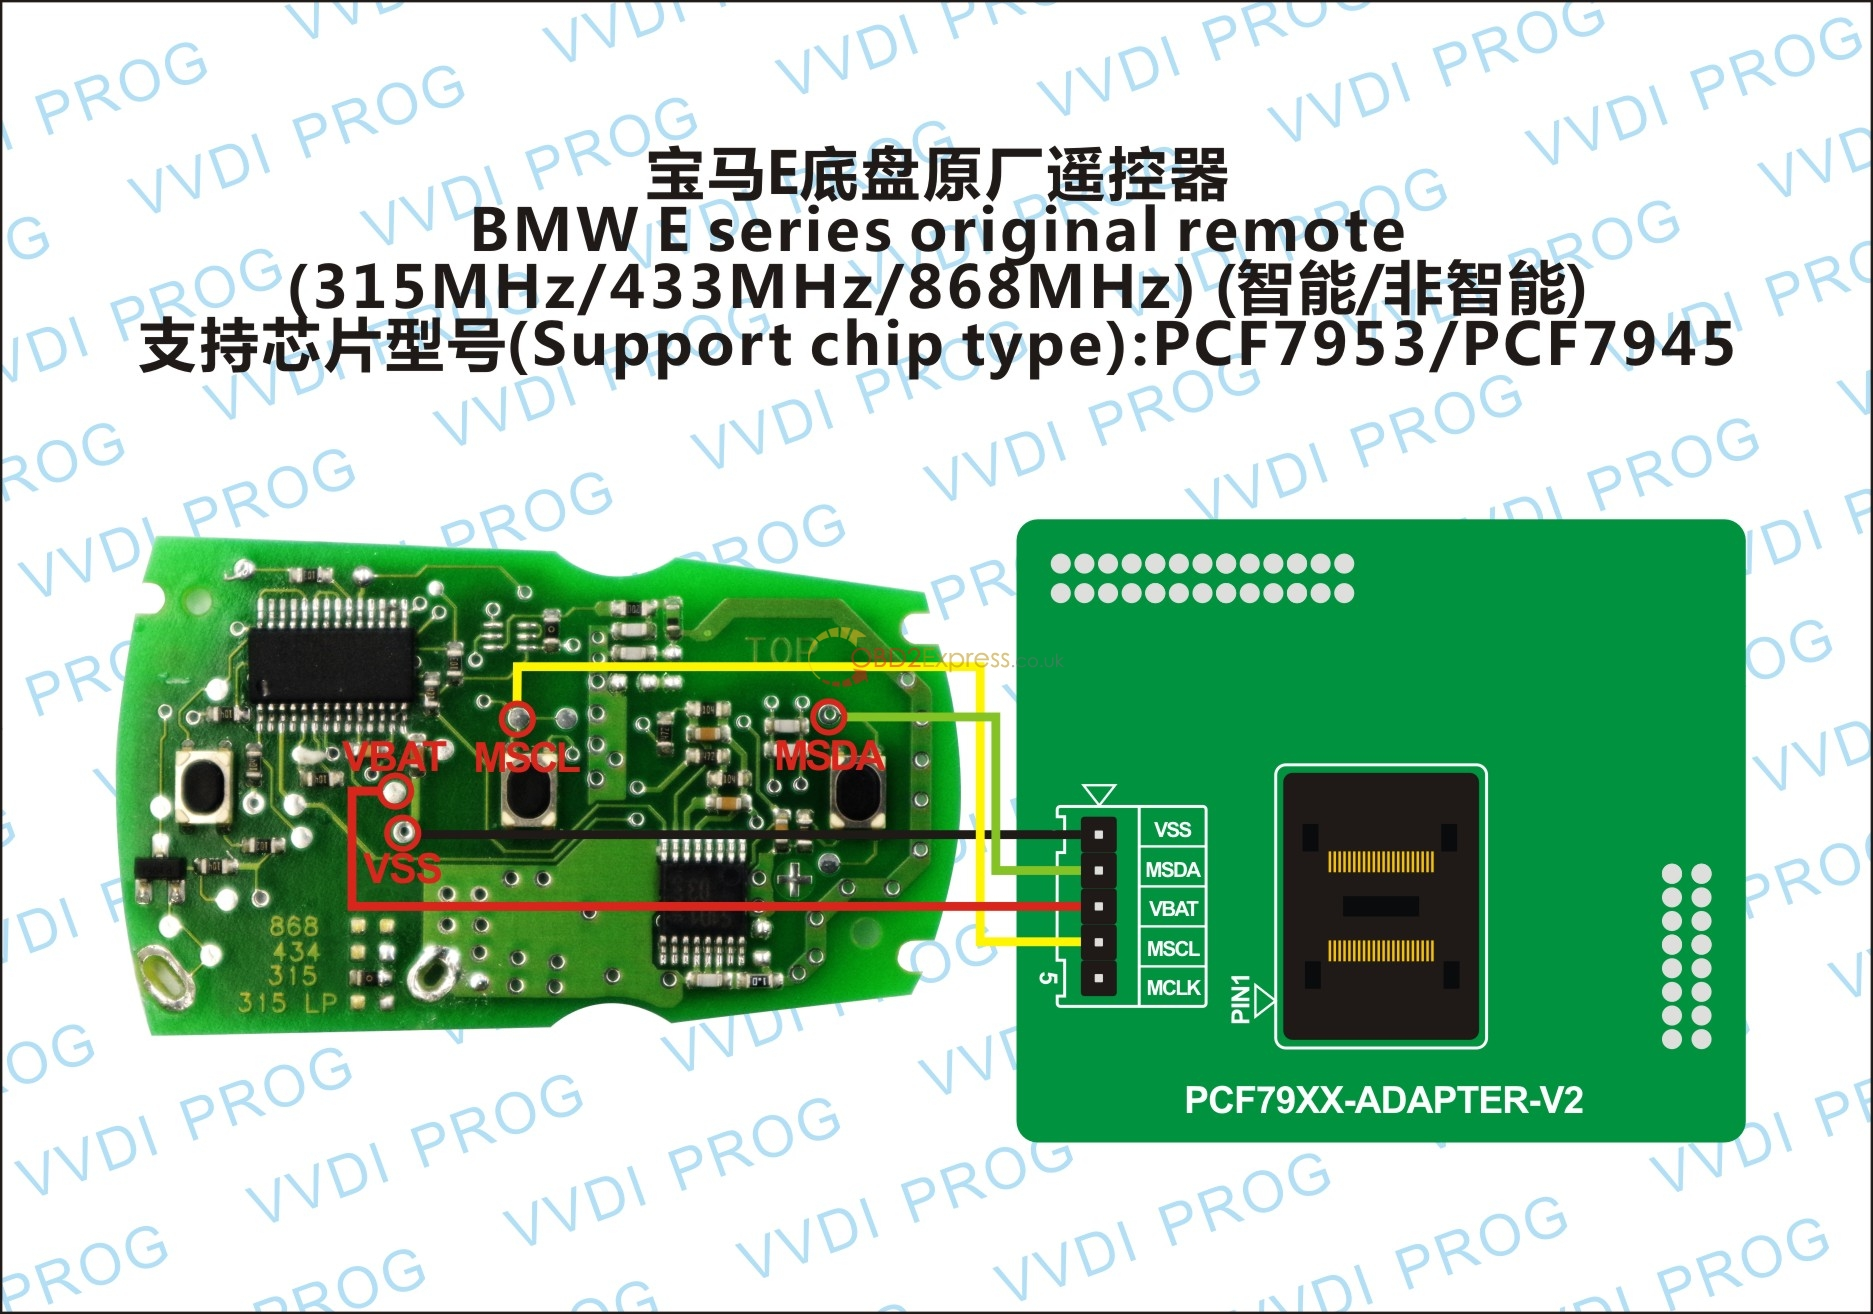 BMW-E-SEIRES-ORIGINAL-REMOTE-RENEW-IN-CIRCUIT